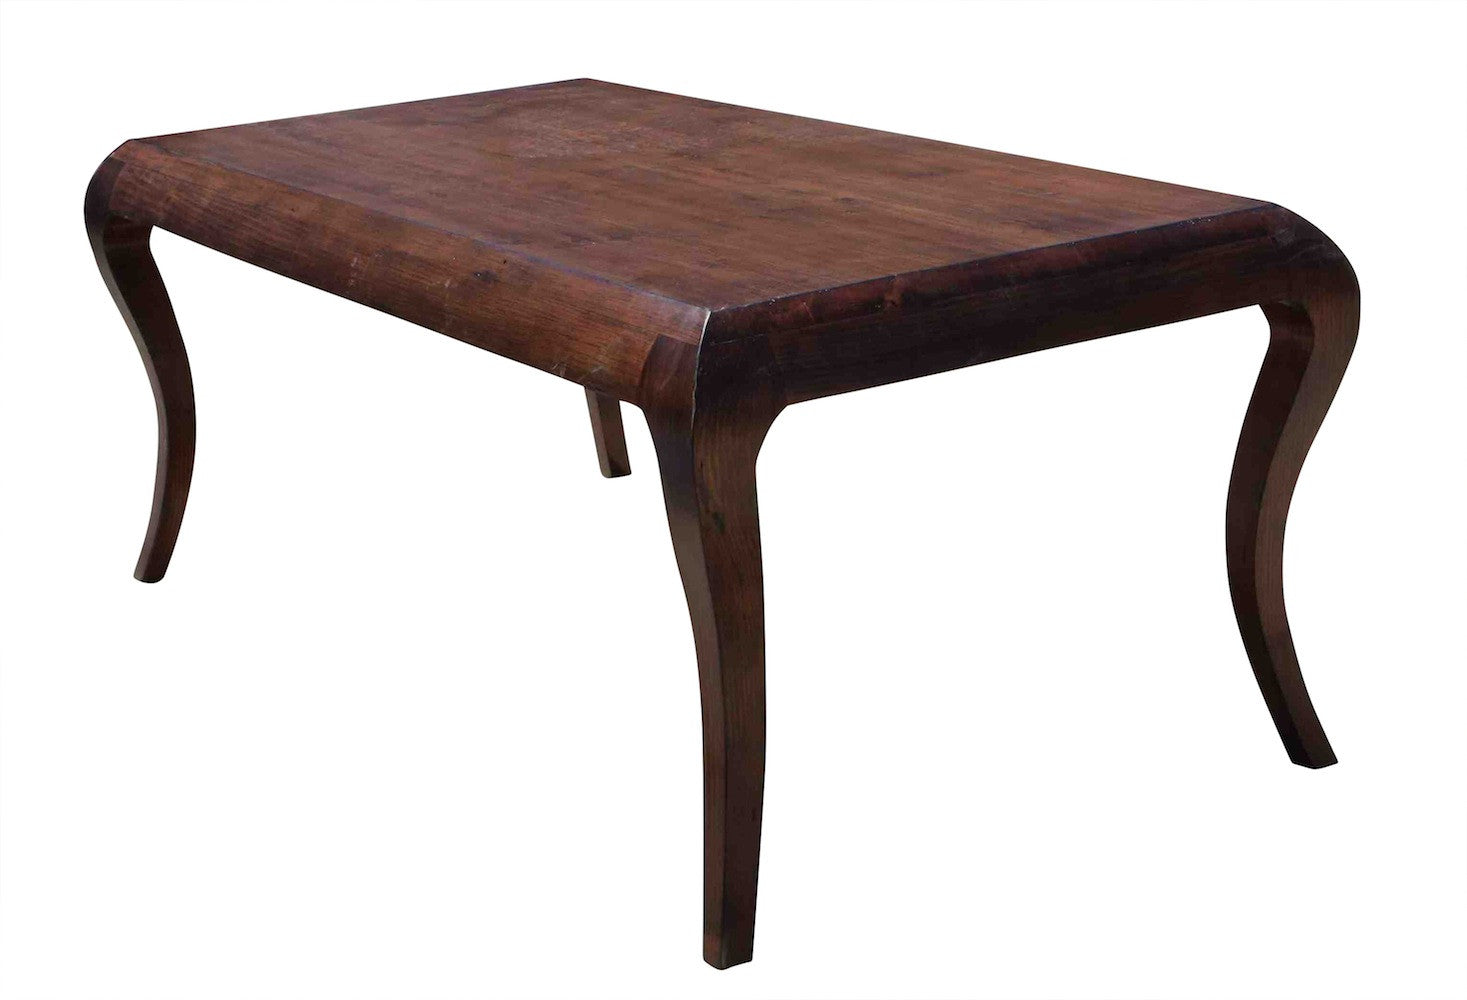 Incroyable ... Salvaged Solid Wood Mystic Cabriole Leg Dining Table ...